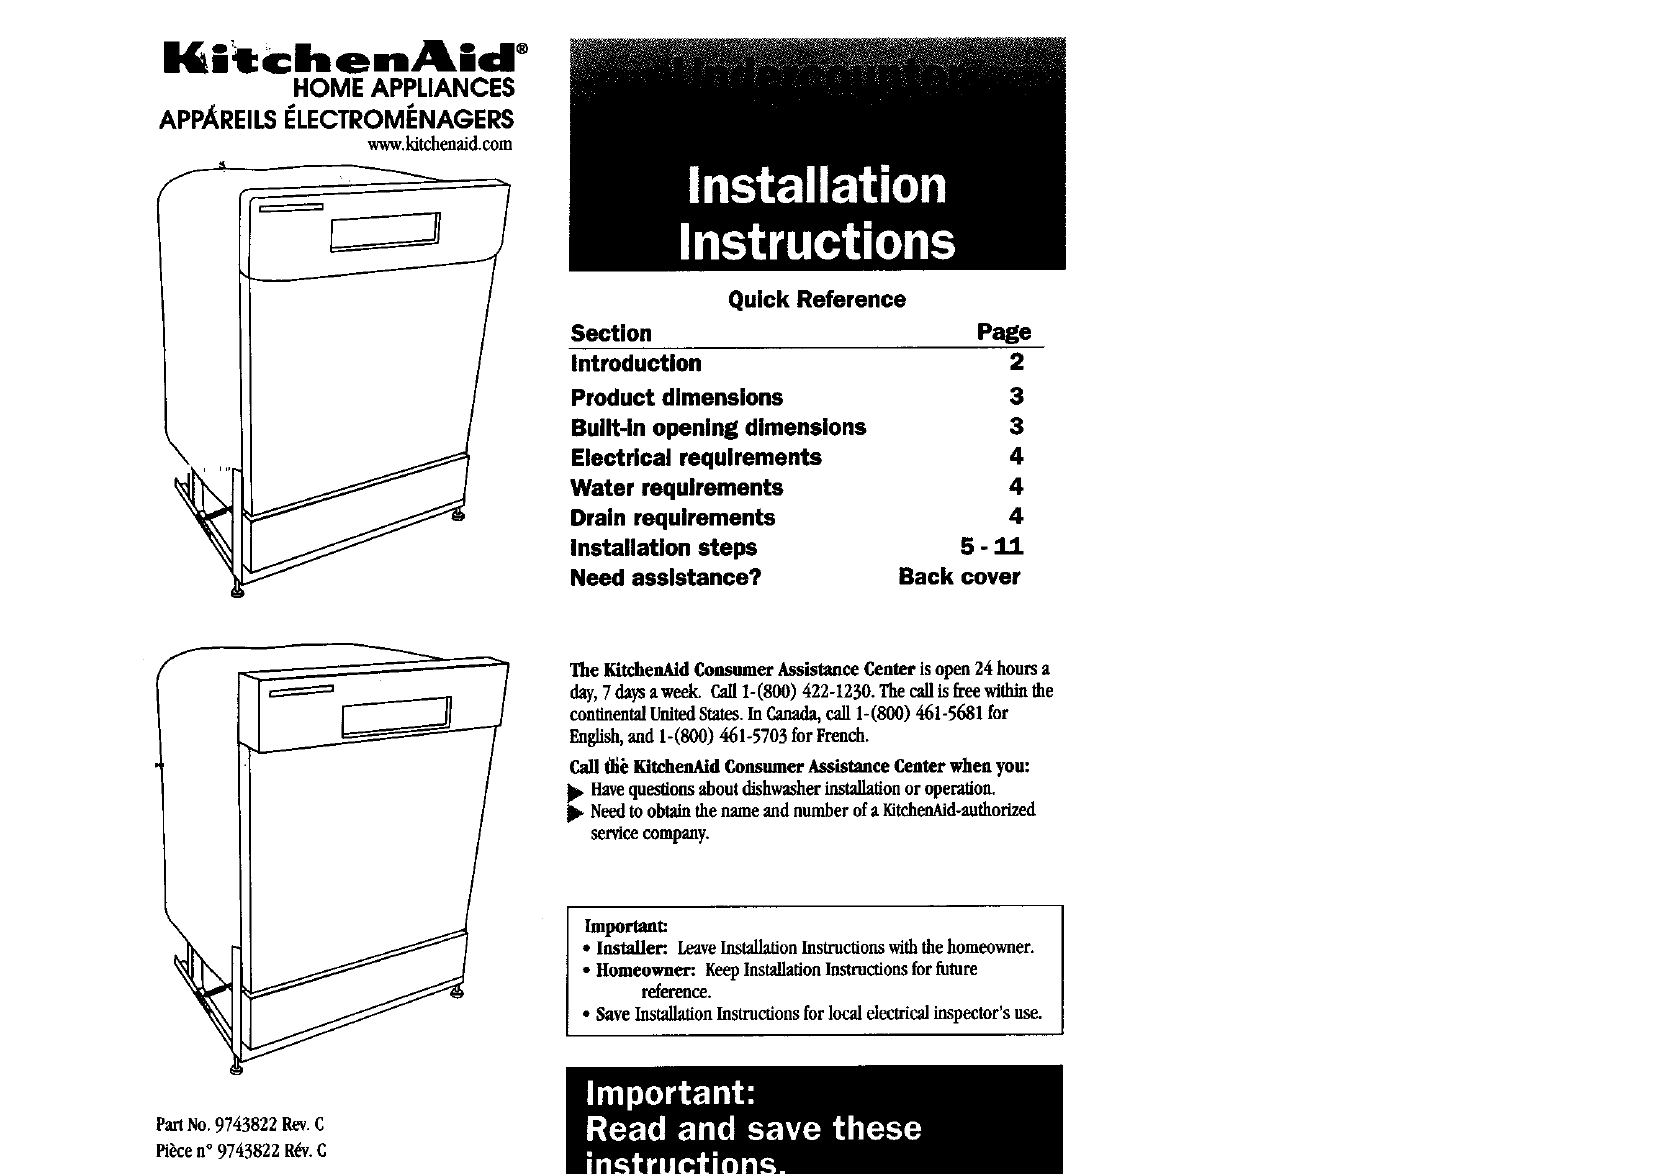 kitchenaid user manuals daily instruction manual guides u2022 rh testingwordpress co KitchenAid Washer User Manuals KitchenAid Washer User Manuals